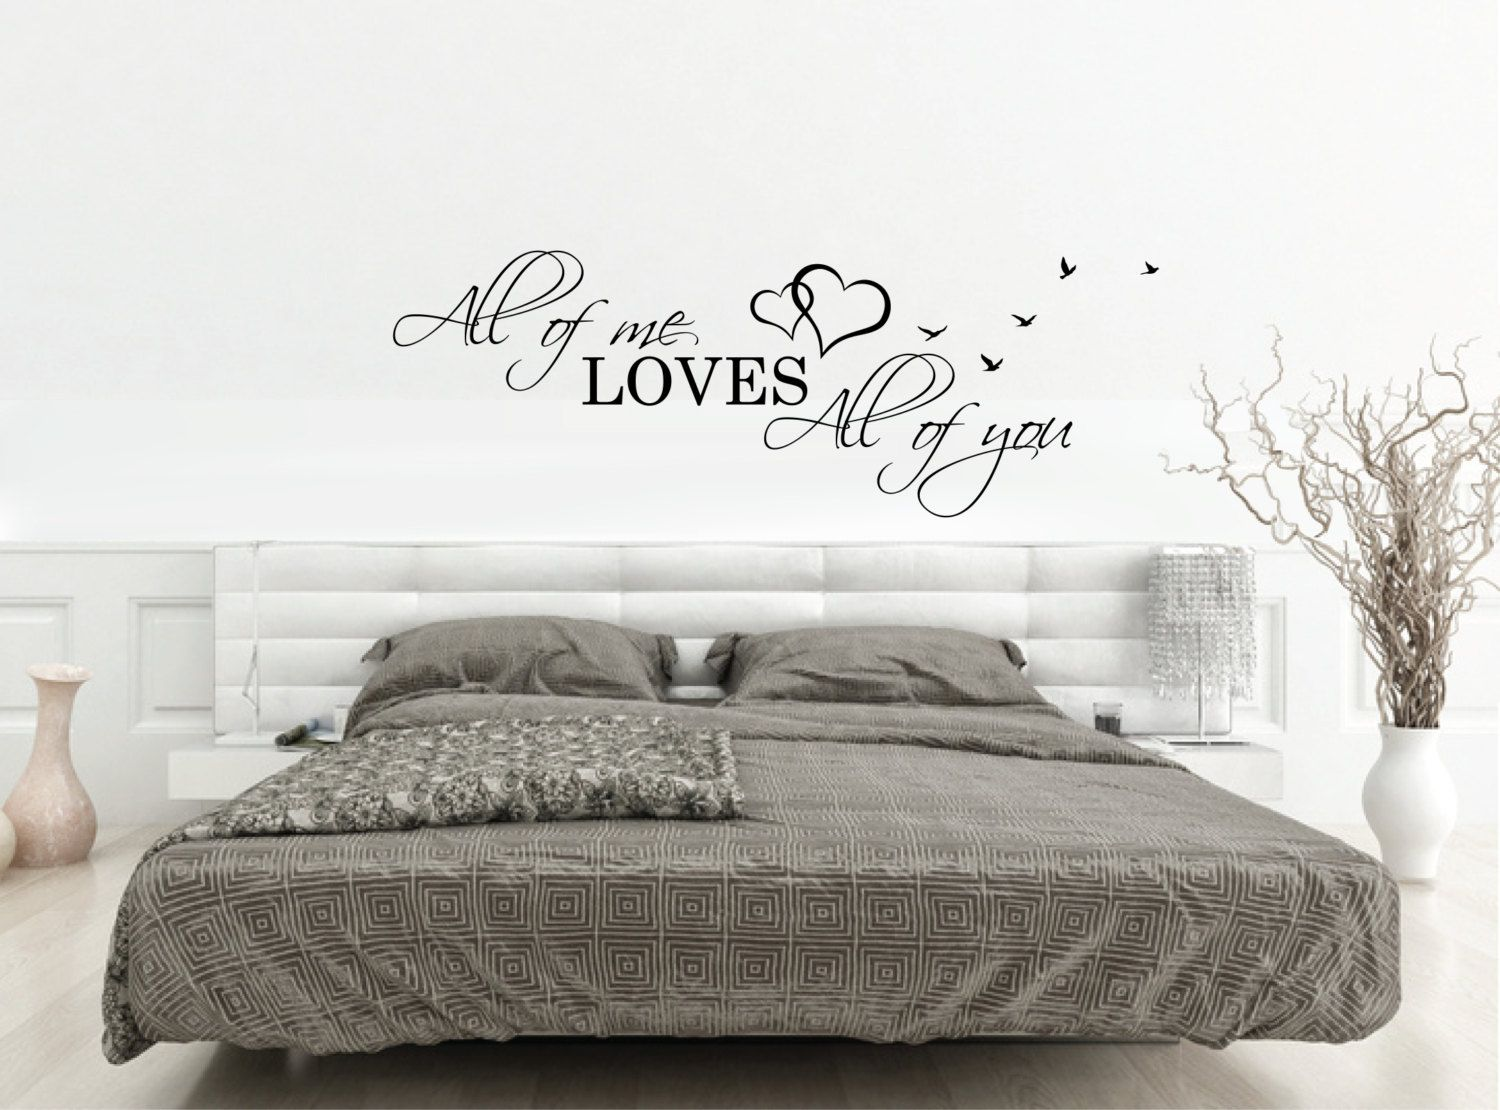 Above Bed Wall Decal Quote All